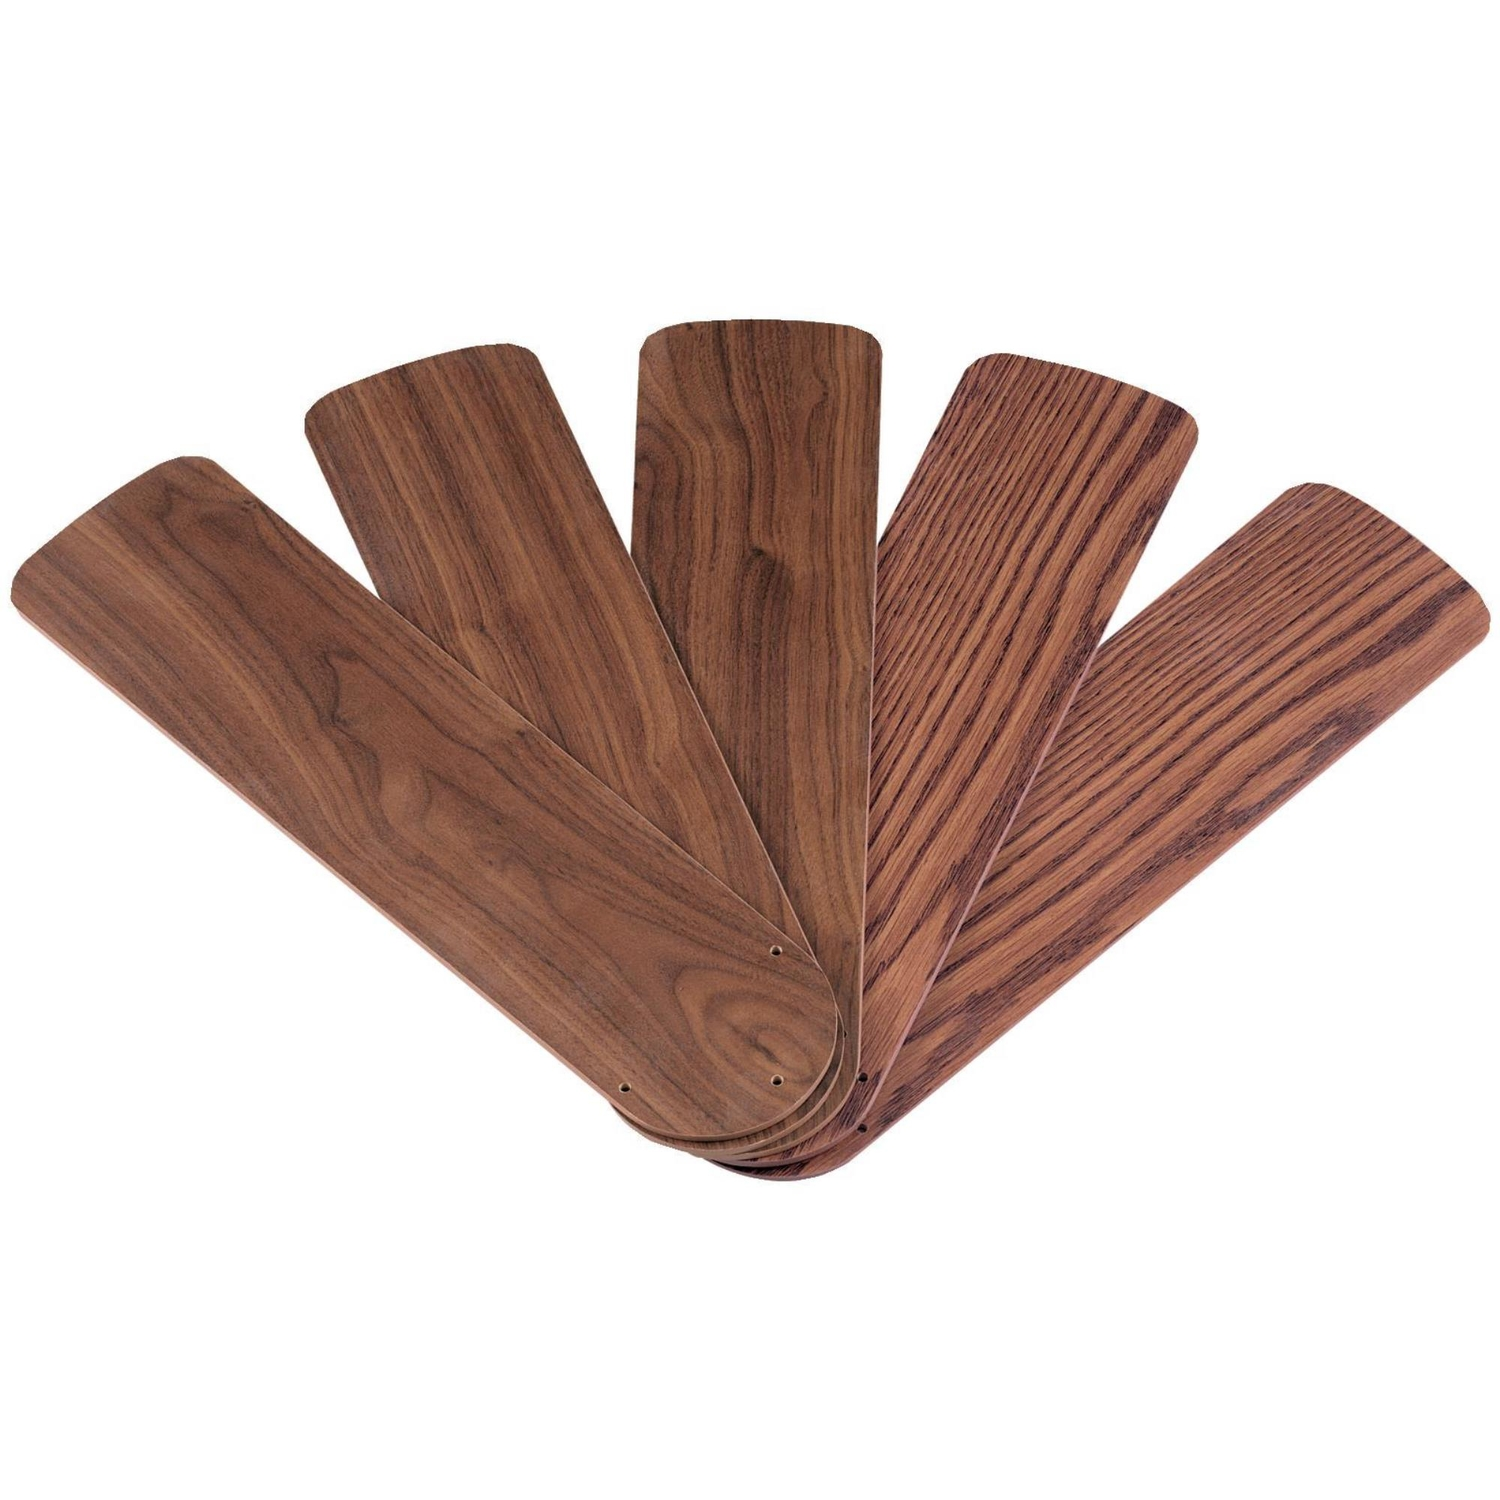 Wooden Electric Fan Westinghouse Natural Wood Ceiling Fan Blades Ace Hardware